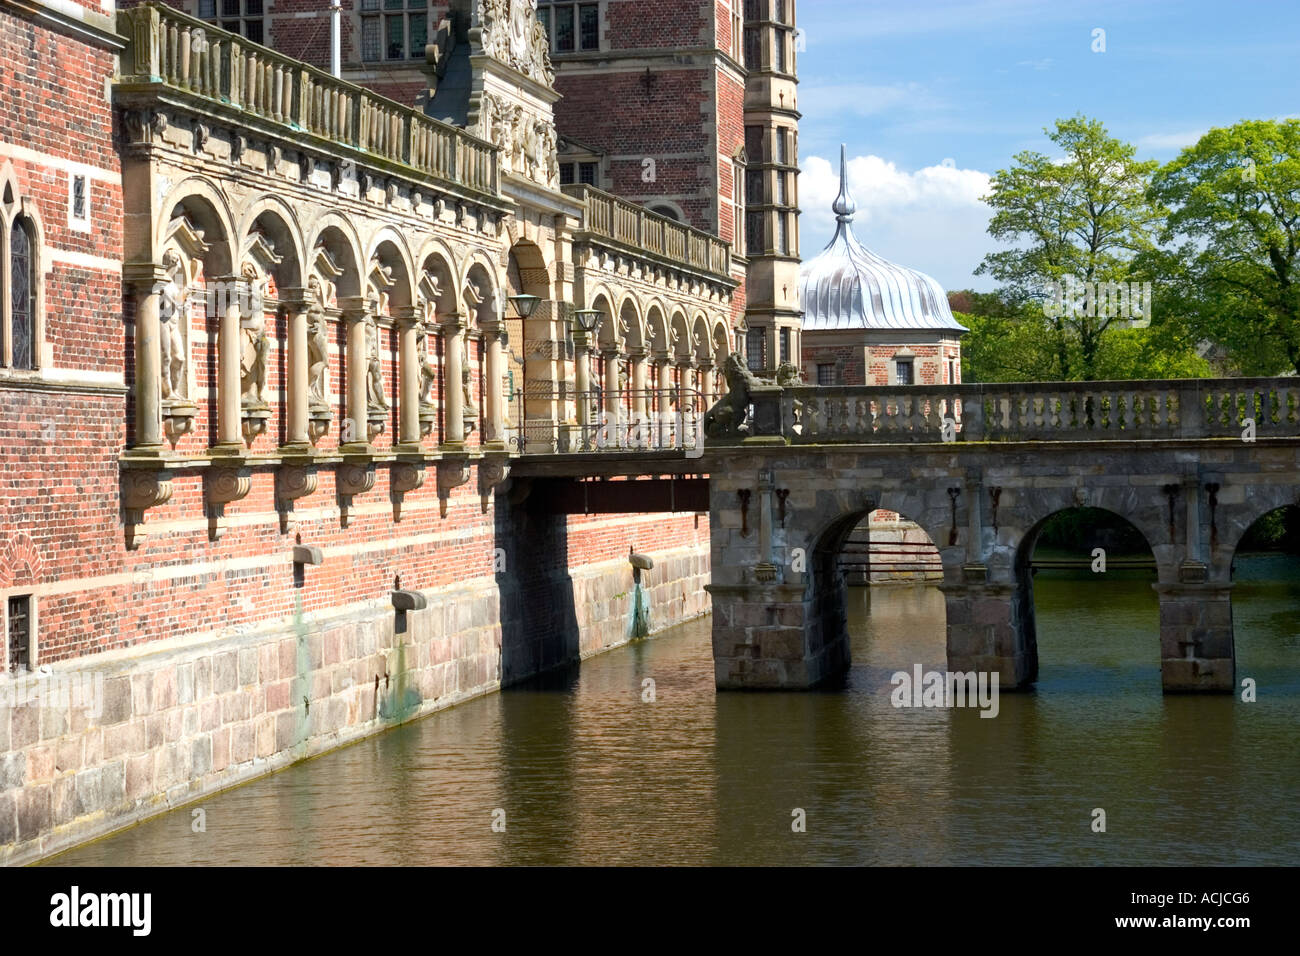 Entrance over the moat to Fredriksborg Slot Hillerød Denmark - Stock Image